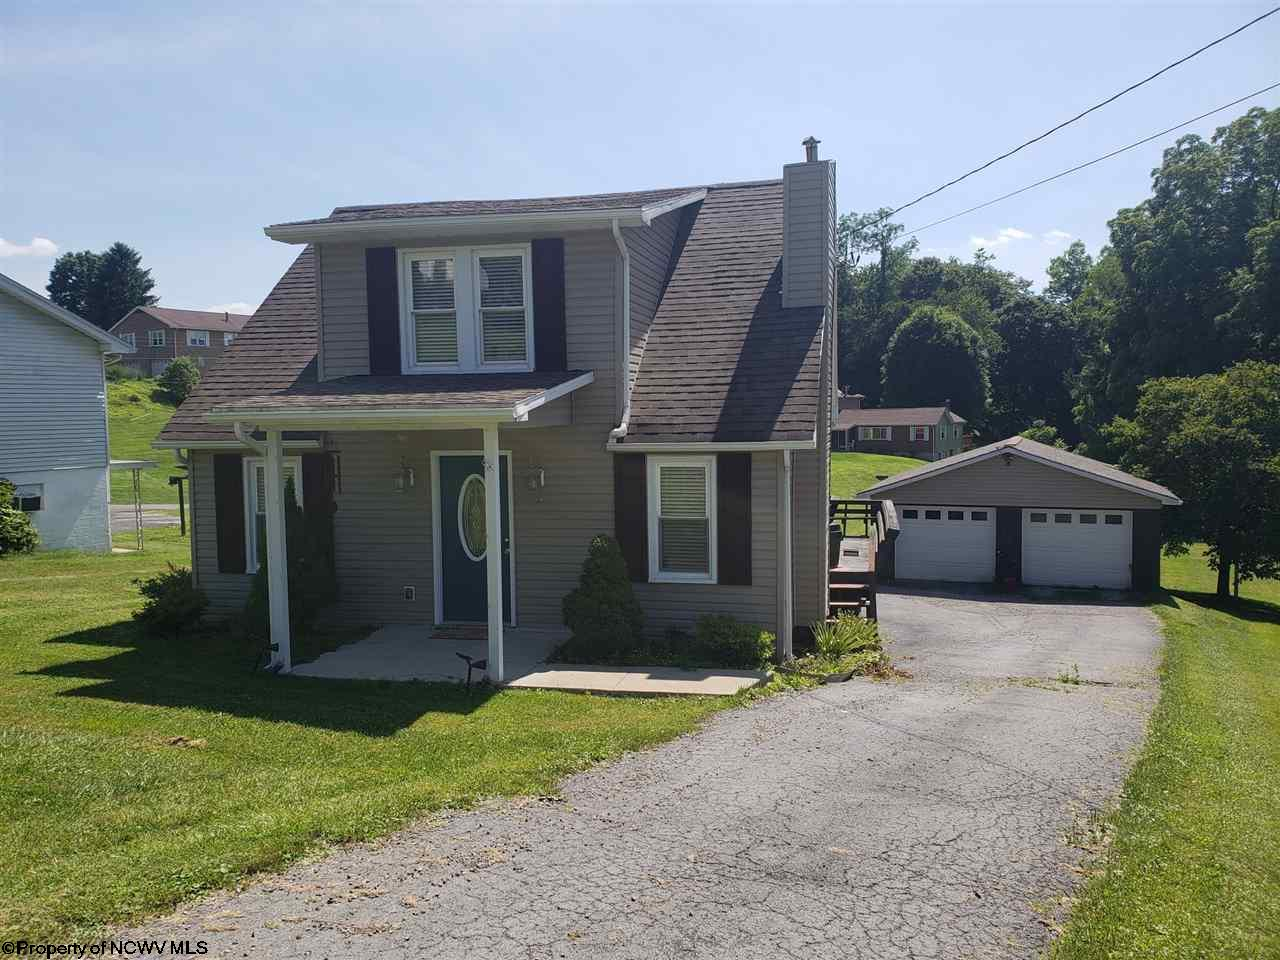 3172 FAIRMONT AVENUE, FAIRMONT, WV 26554  Photo 1